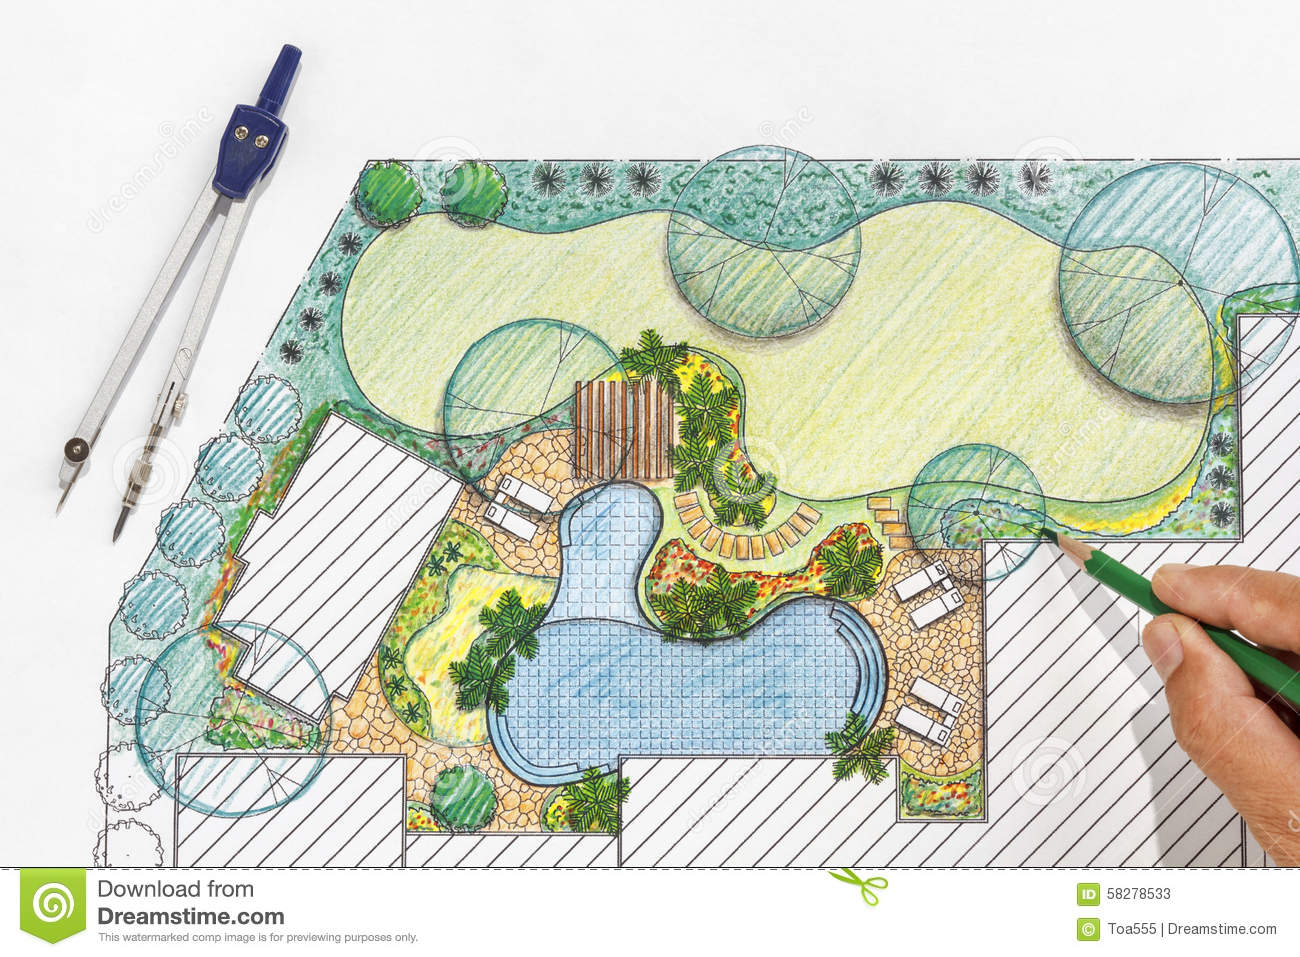 Landscape architect design backyard plan for villa stock for Landscape blueprints